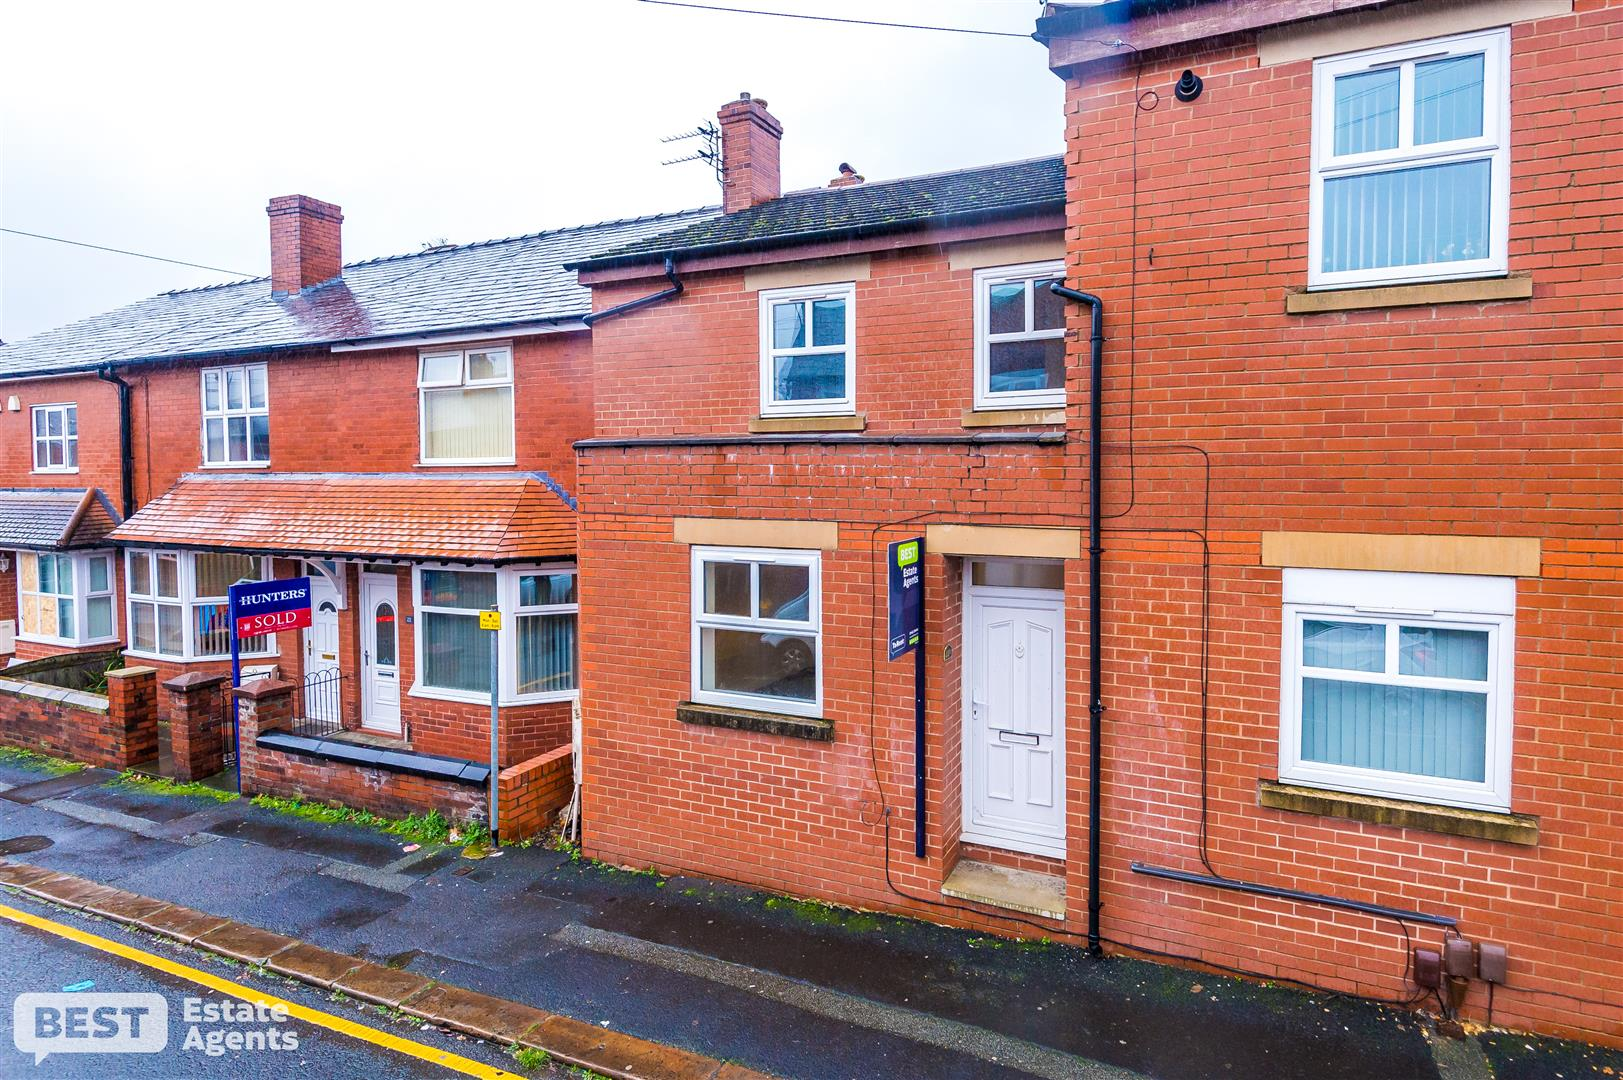 Hope Street, Leigh, Greater Manchester BEST Estate Agents